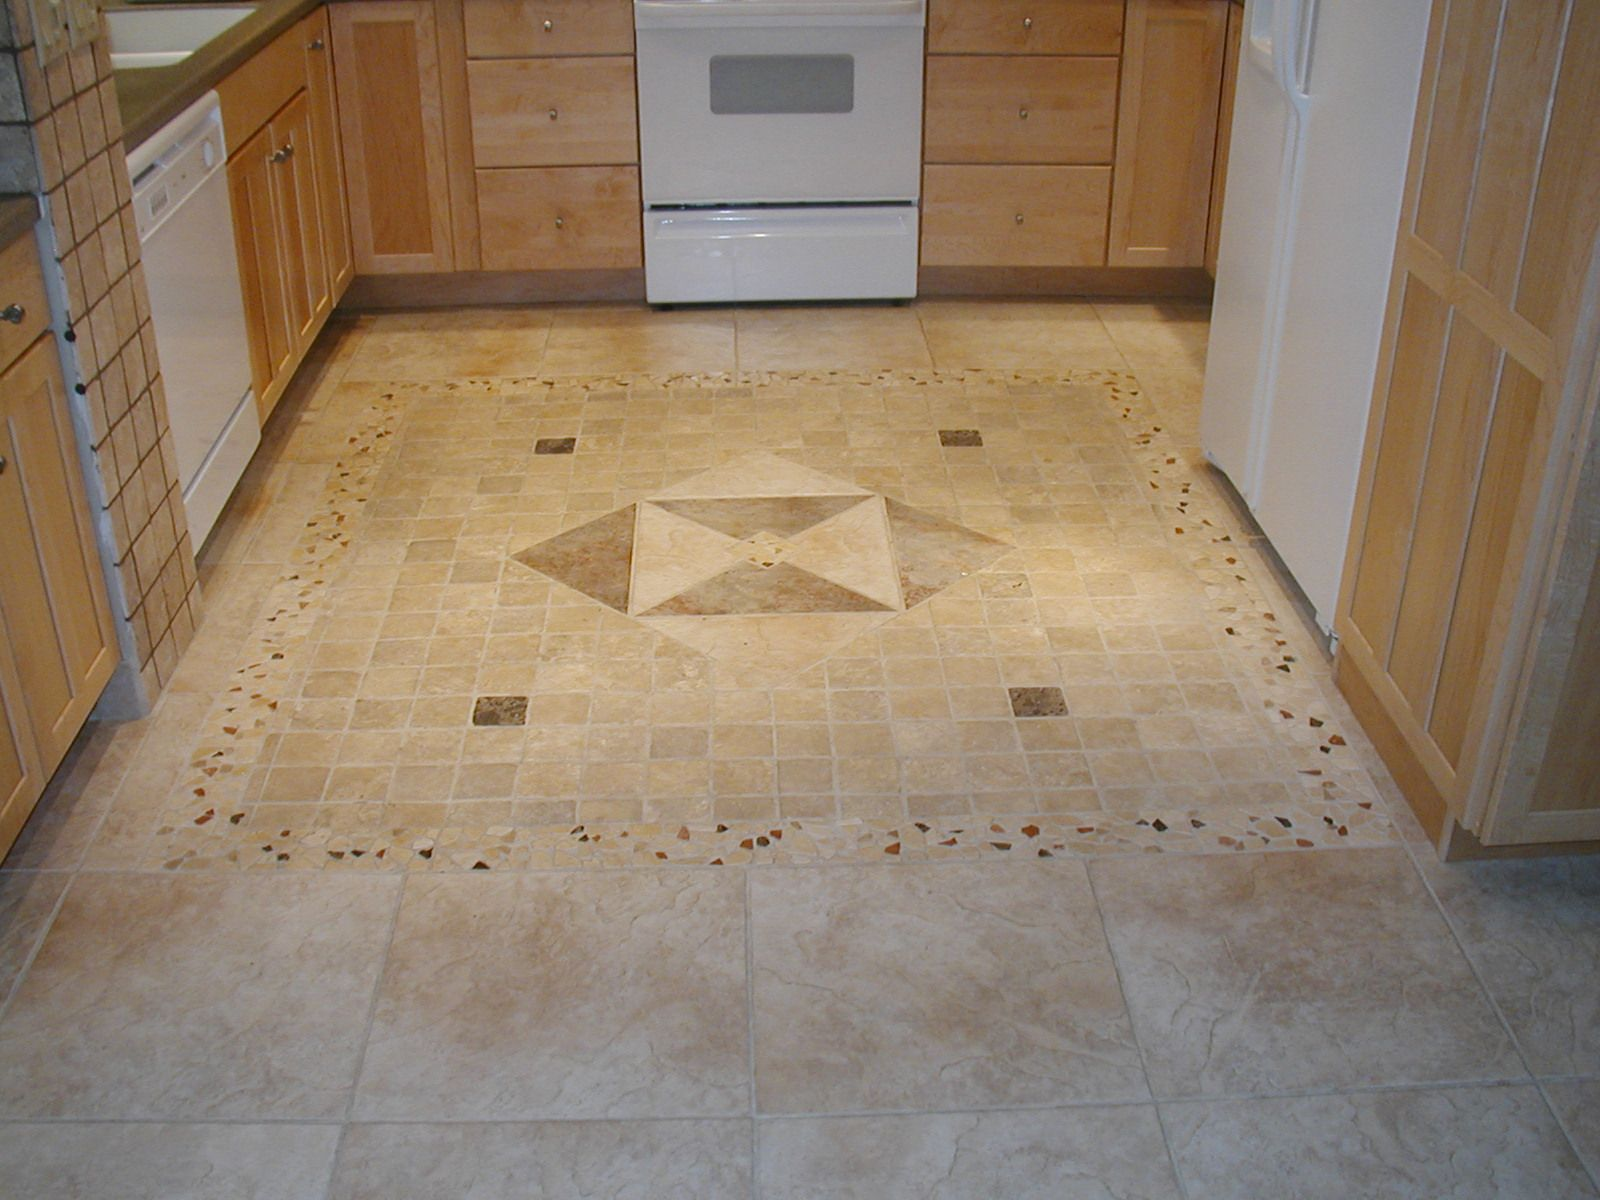 Tile Flooring In Kitchen Amazing Foyer Tile Floor Designs Tile Floor Designs